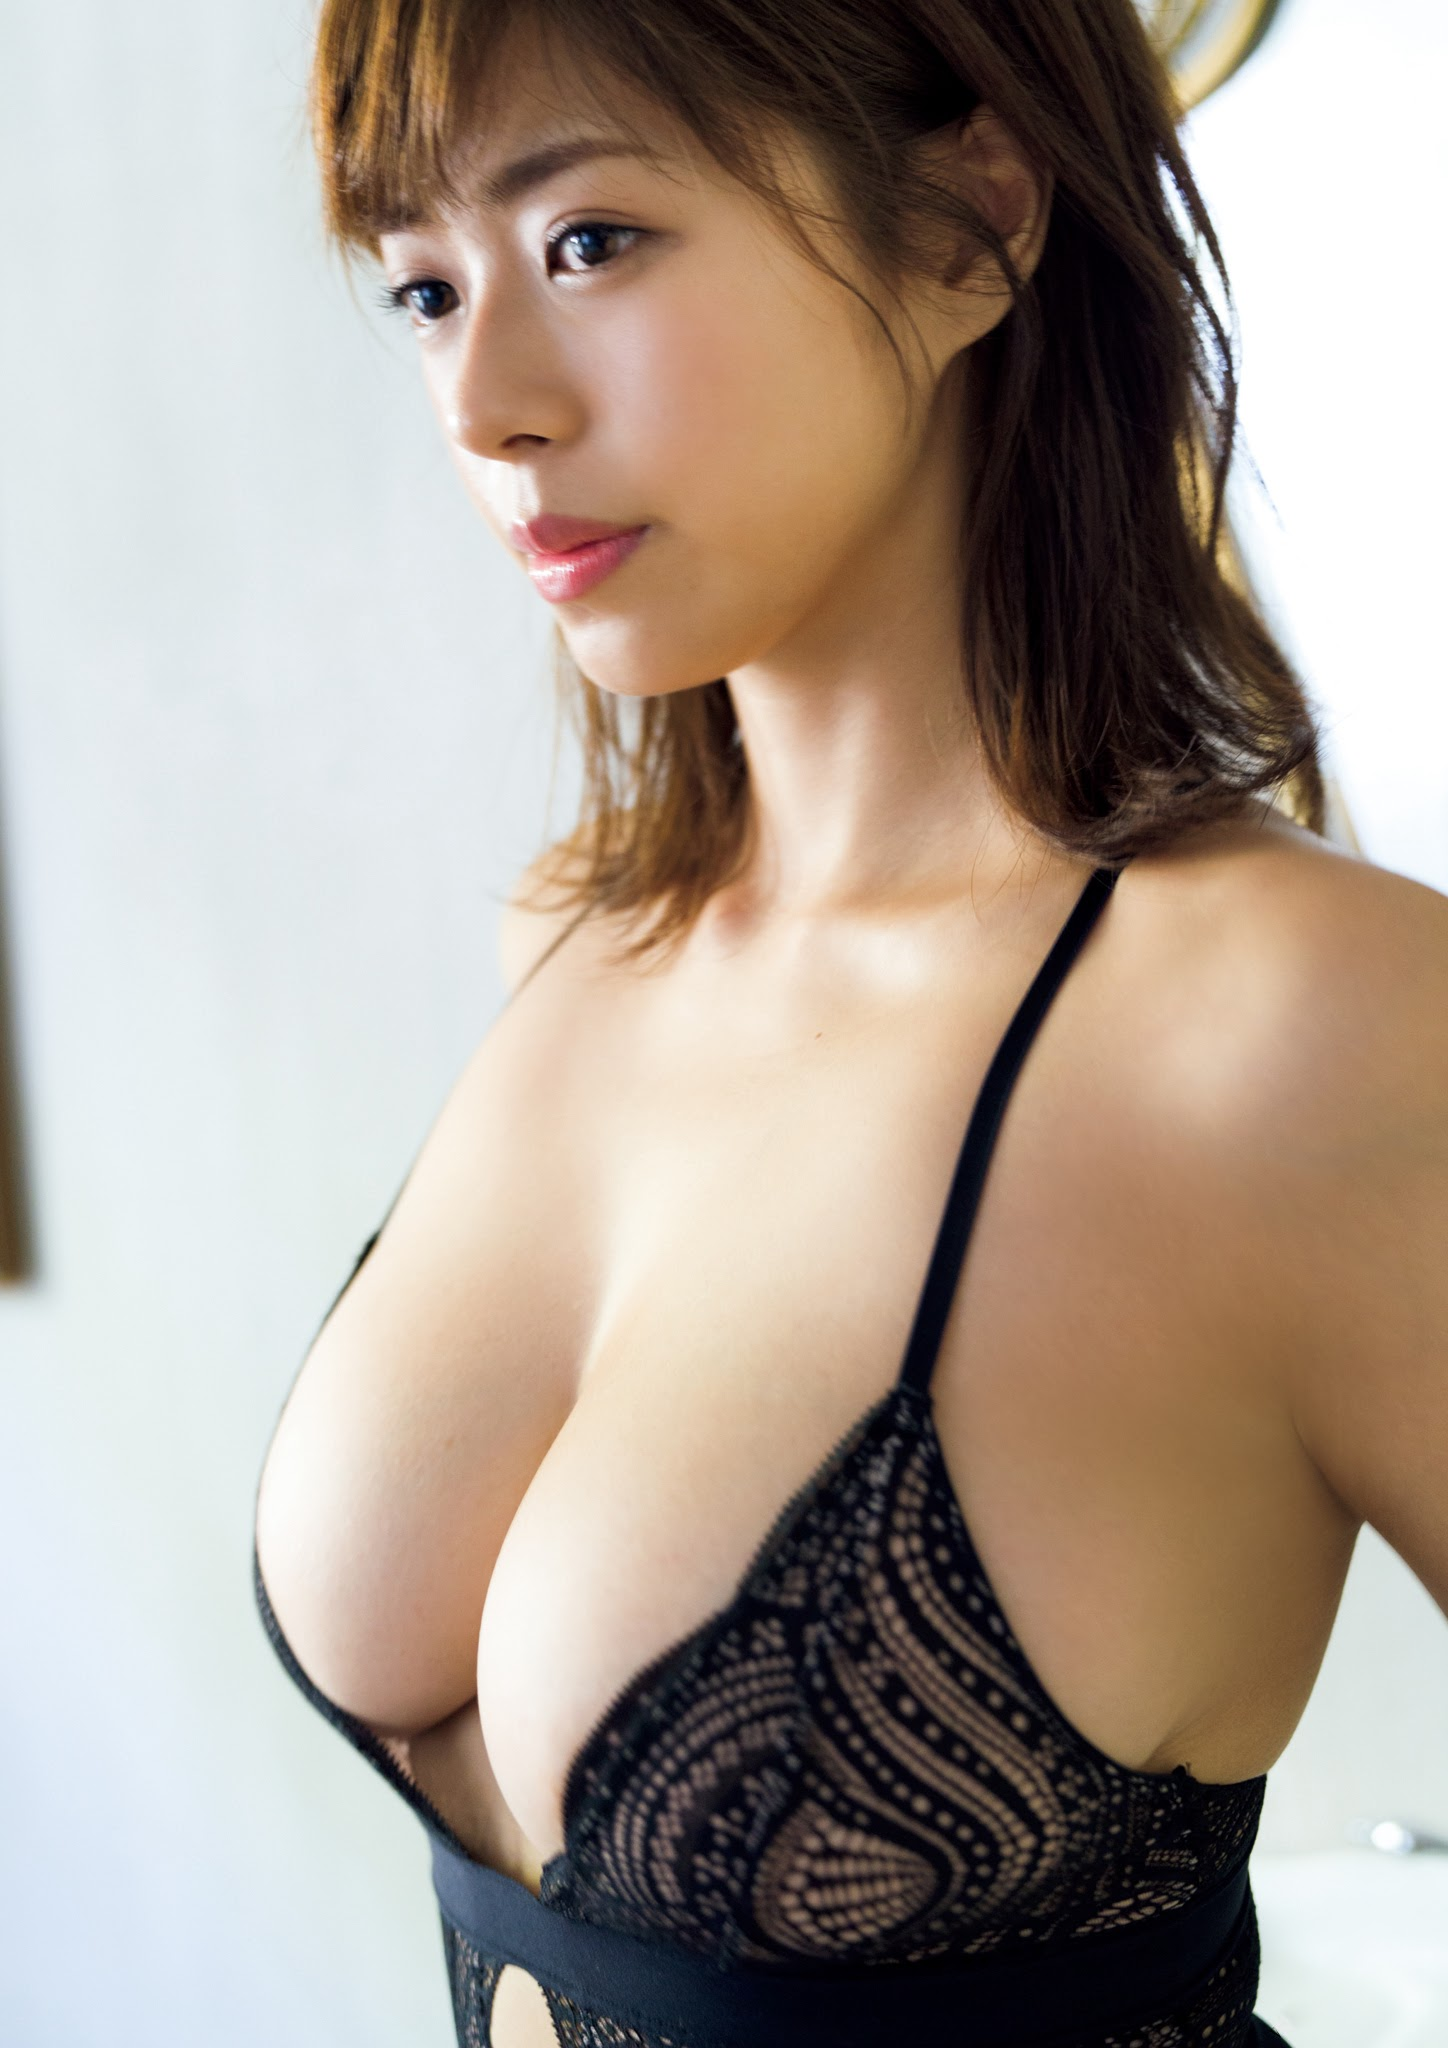 Super body of H cup Minami Wachi 2020 that exposes body and mind in tropical Thailand063